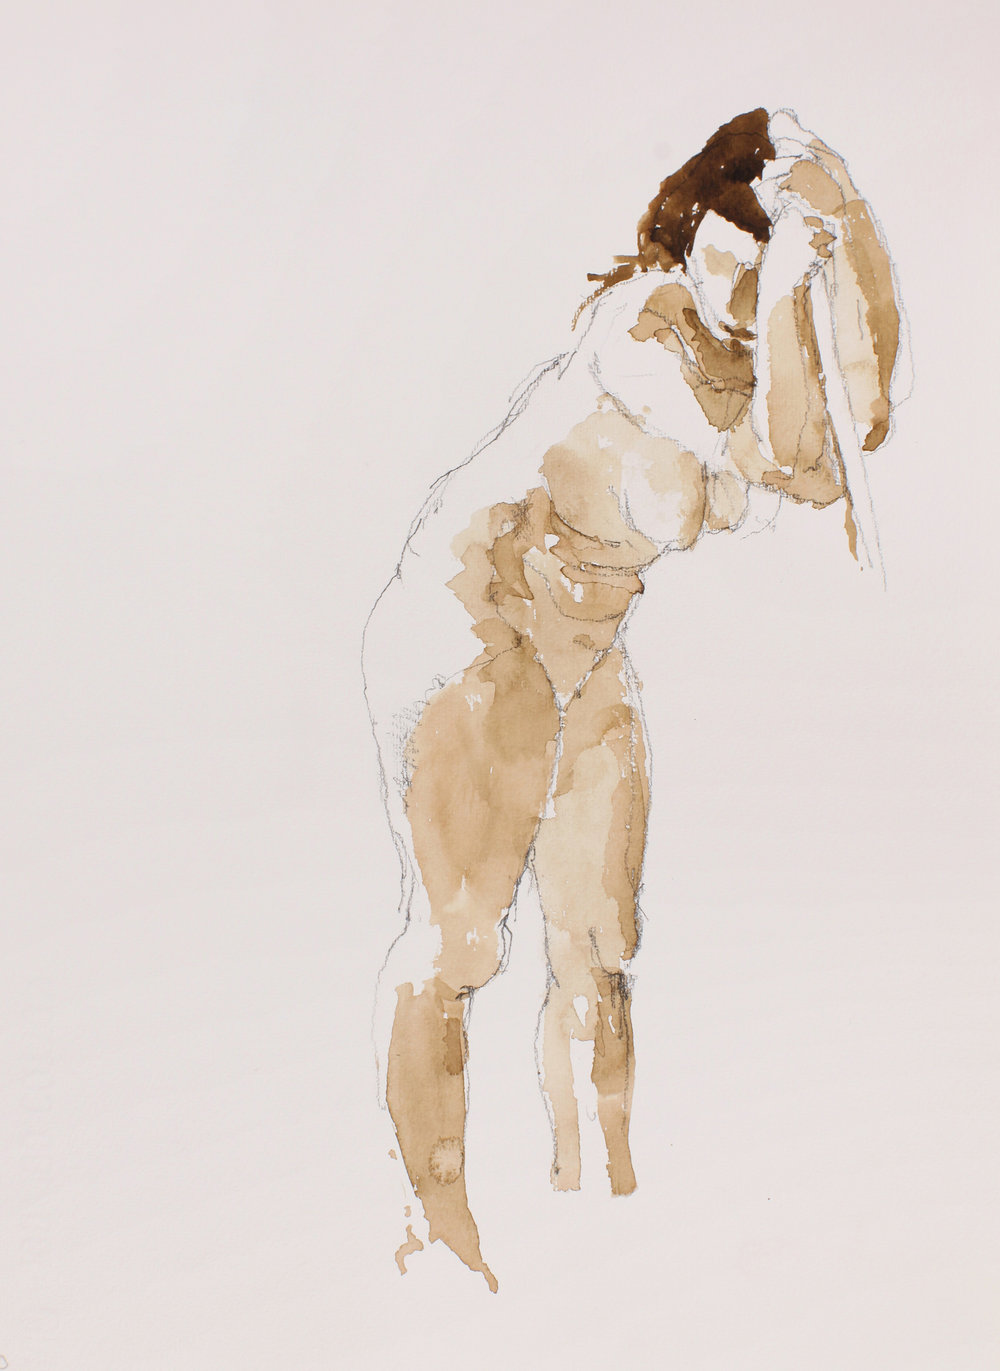 2006_Standing_Nude_with_Raised_Arms_Holding_Pole_watercolour_and_pencil_on_paper_15x11in_WPF488.jpg